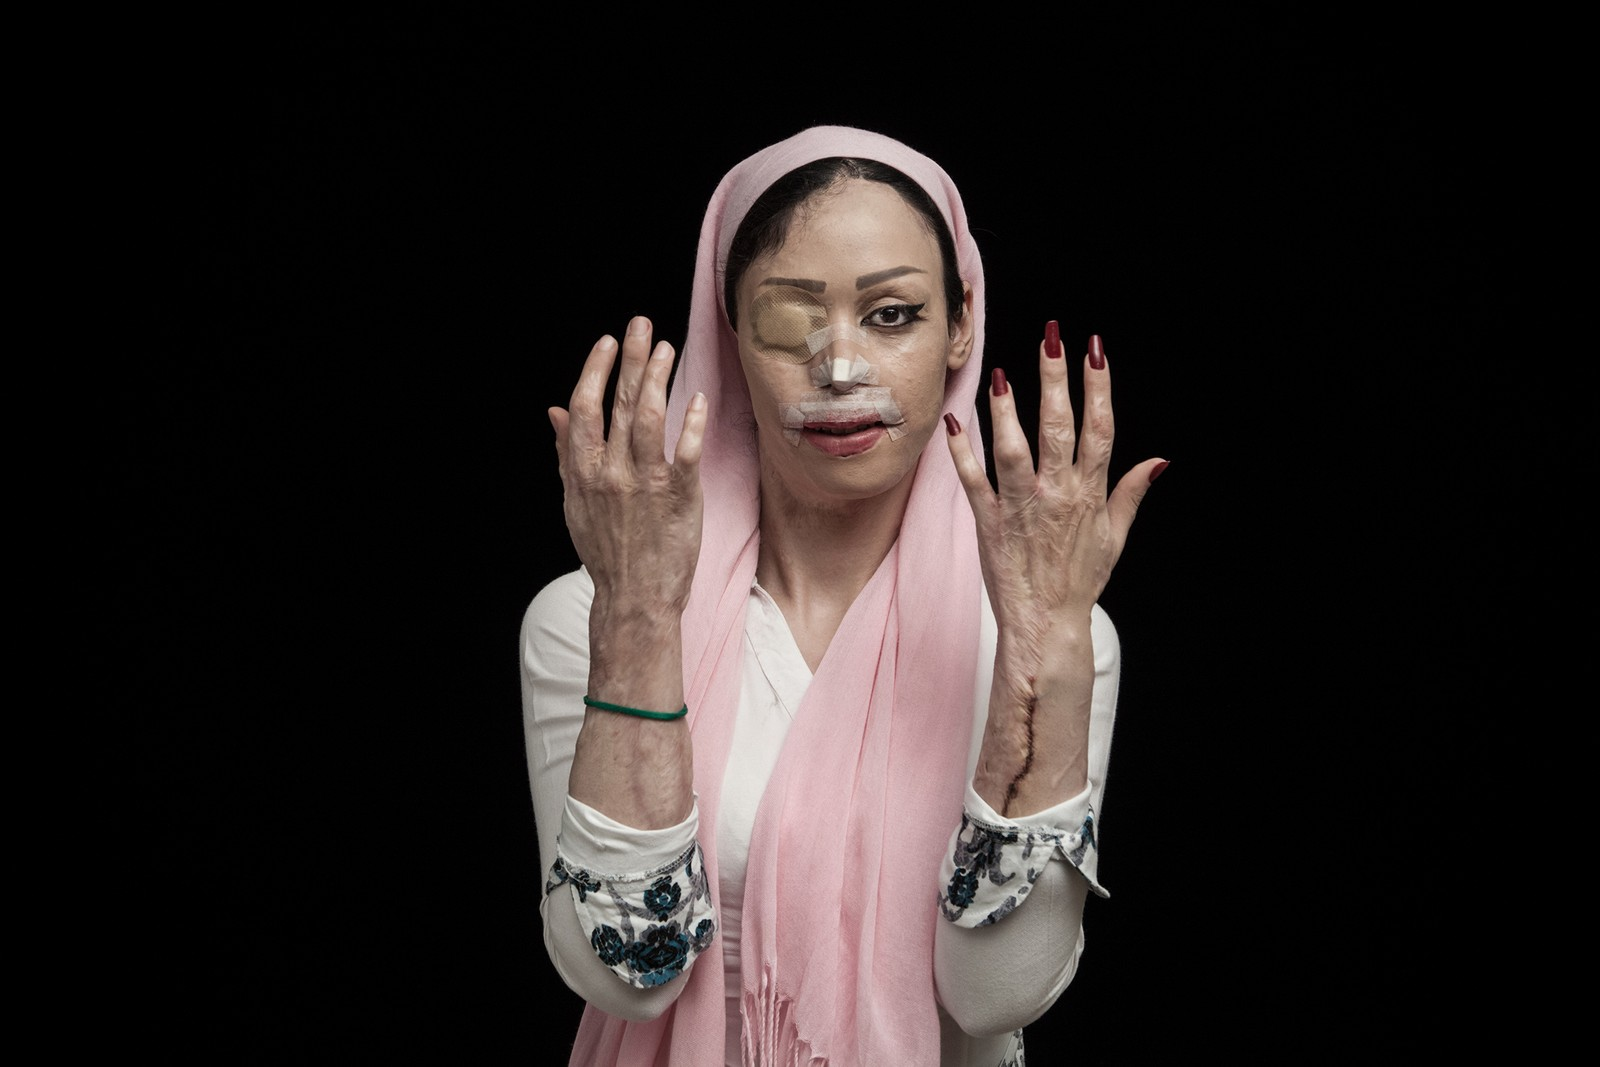 Iranske Asghar Khamseh vant Sony World Photography Awards 2016 for sin portrettserie av ofre for syreangrep.